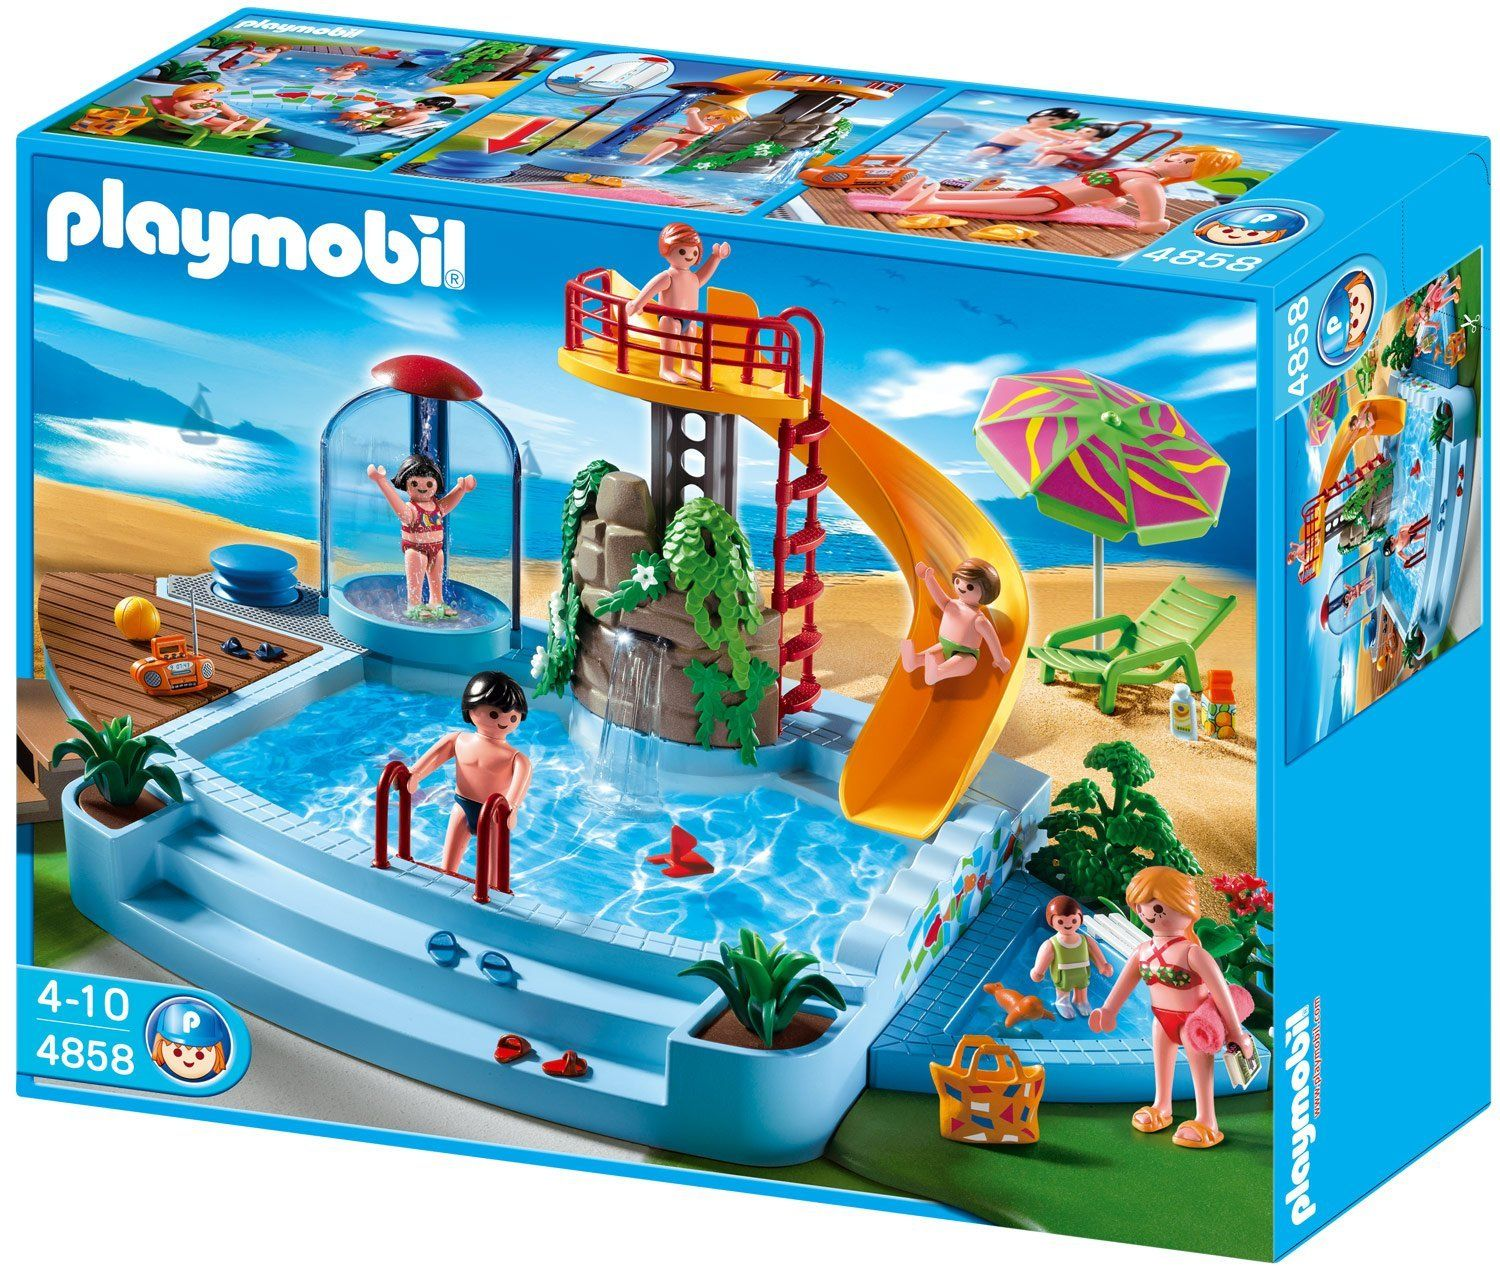 Zwembad Playmobil 4858 Playmobil 4858 Related Keywords Suggestions Playmobil 4858